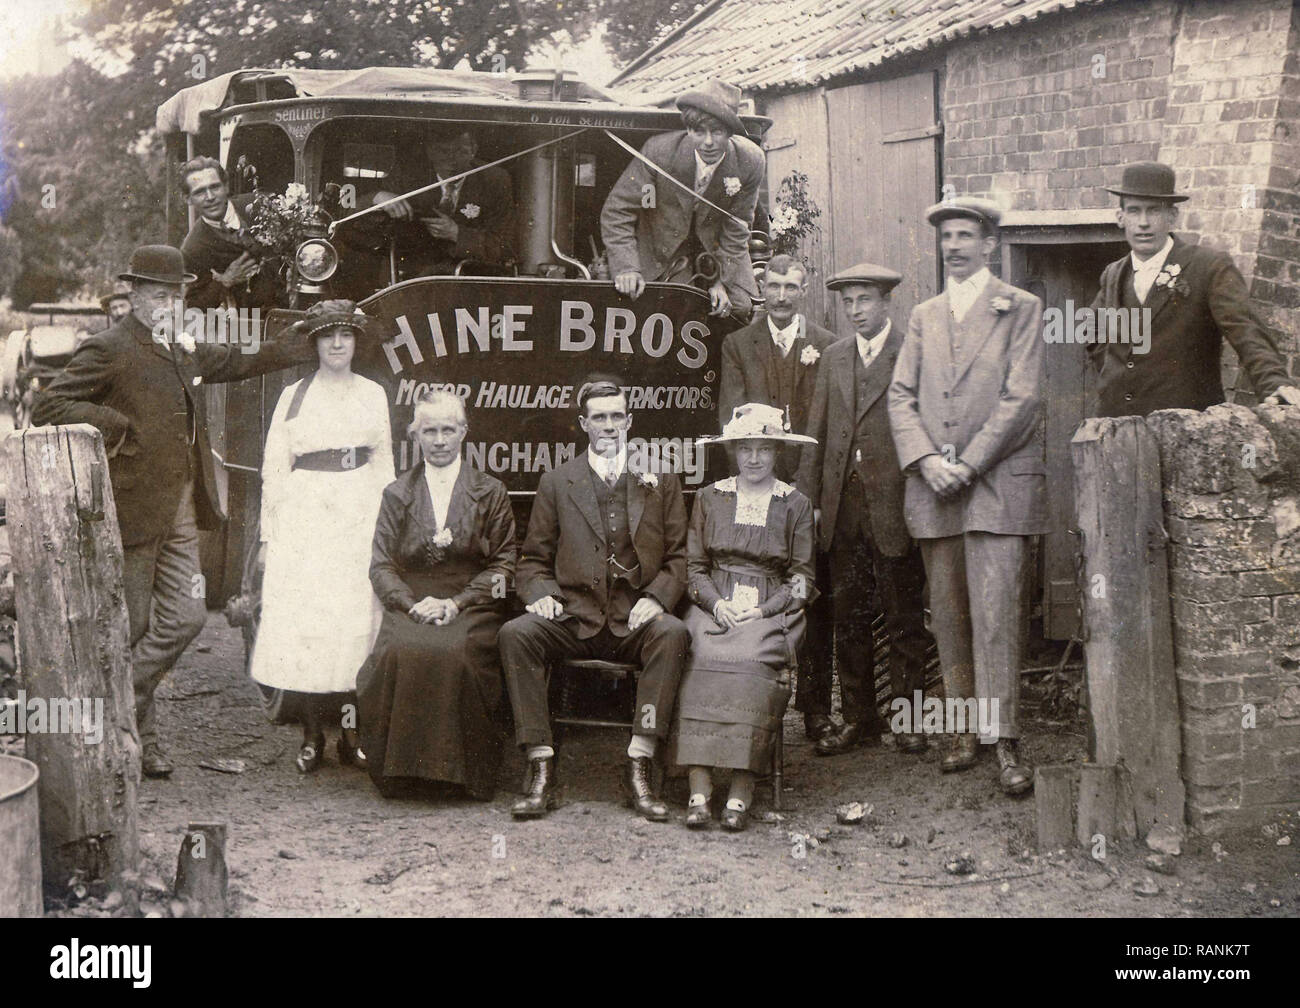 Historical Archive Image of wedding party posing with Sentinel 6-ton steam waggon. Waggon belonging to Hine Bros of Gillingham, Dorset - Stock Image